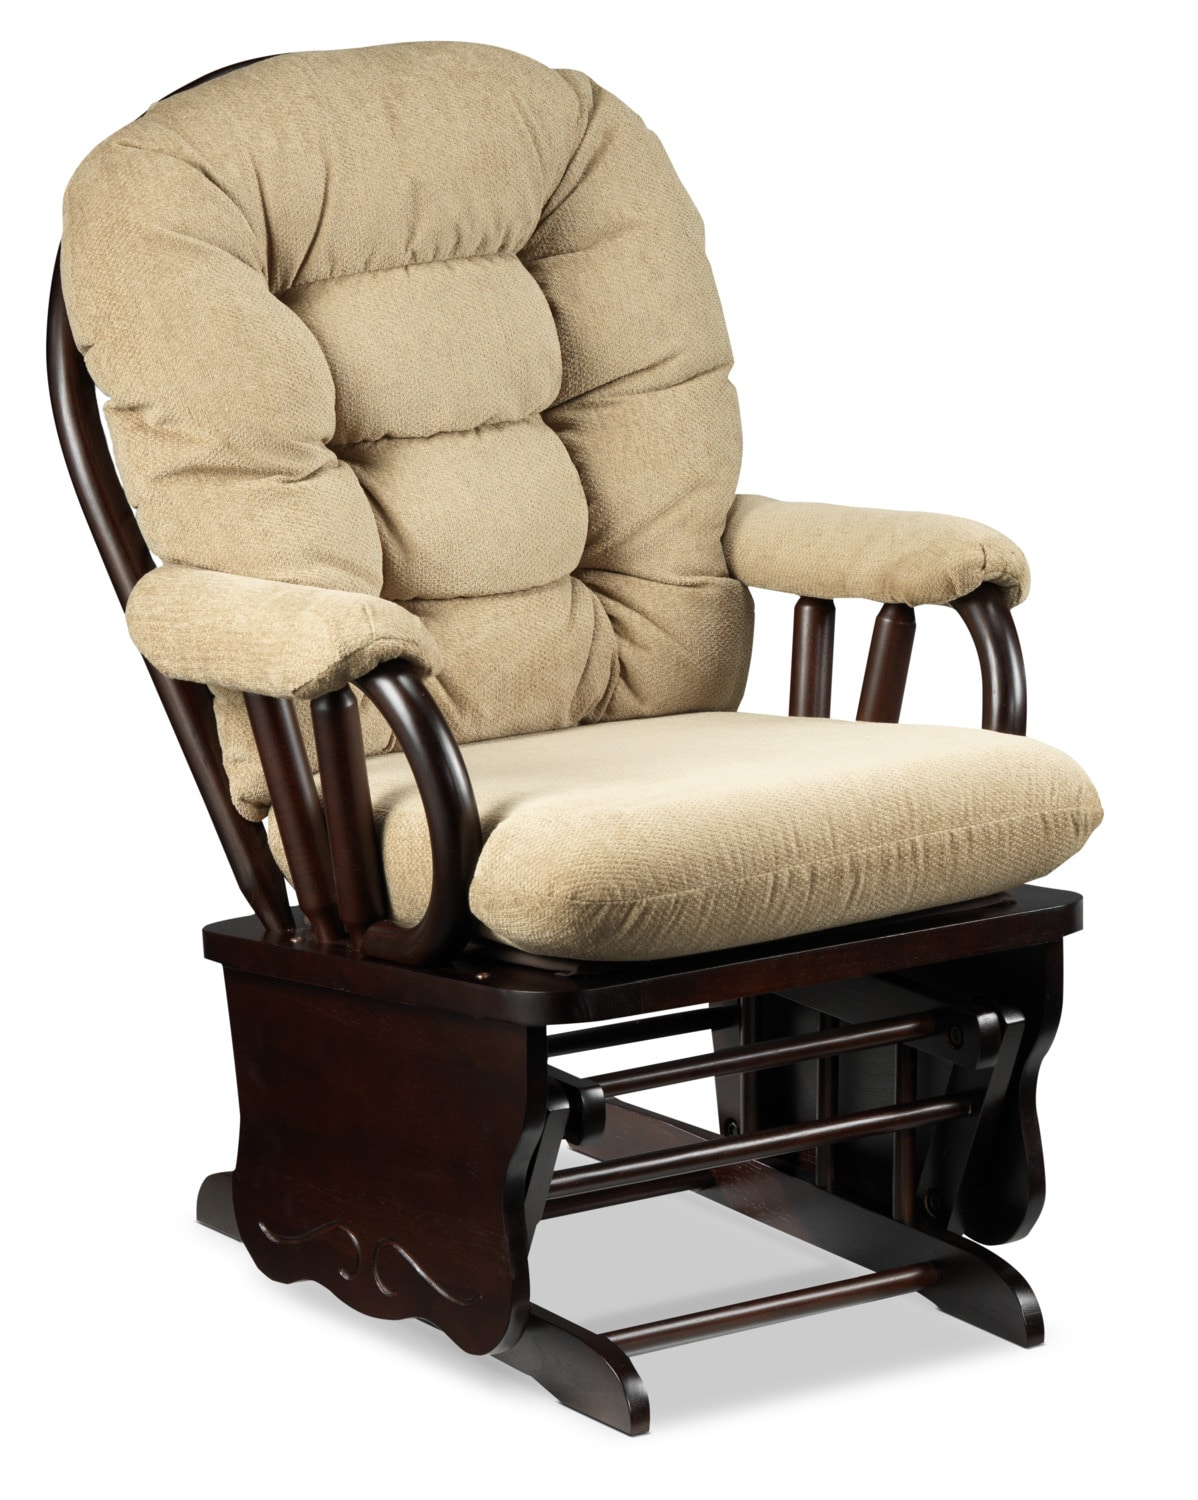 Alexa Glider Chair - Beige and Dark Brown